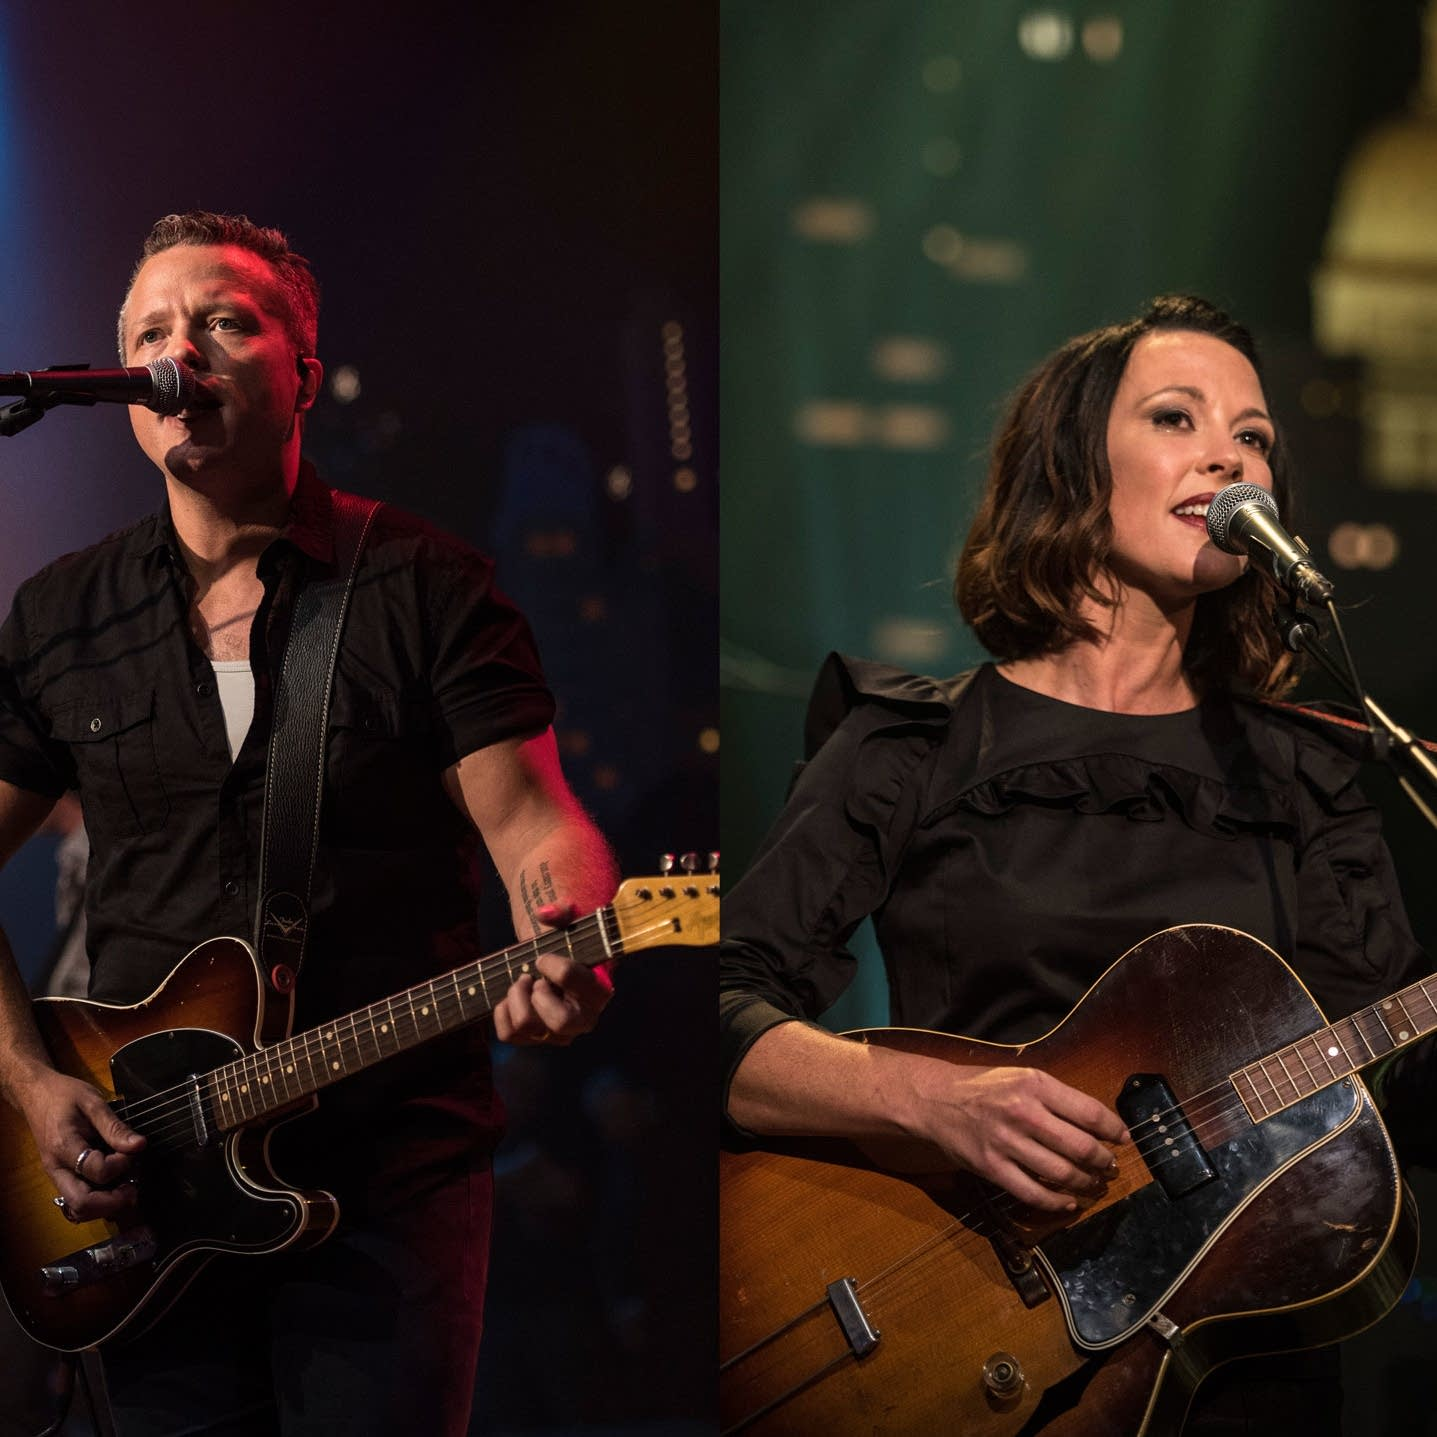 Jason Isbell and Amanda Shires, each performing on Austin City Limits